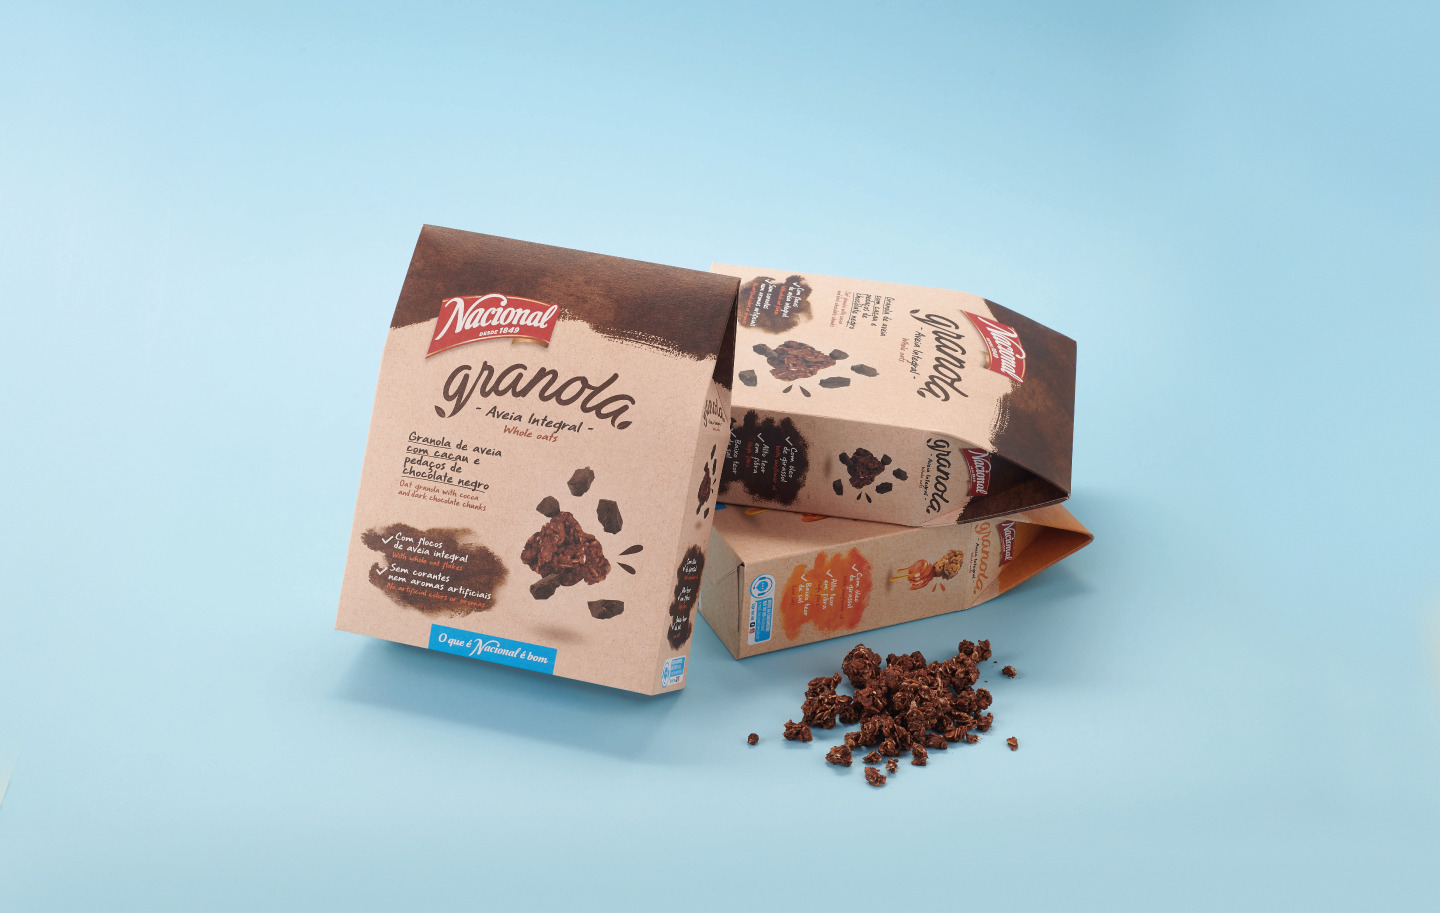 Innovation From a Natural Perspective for Nacional Granola